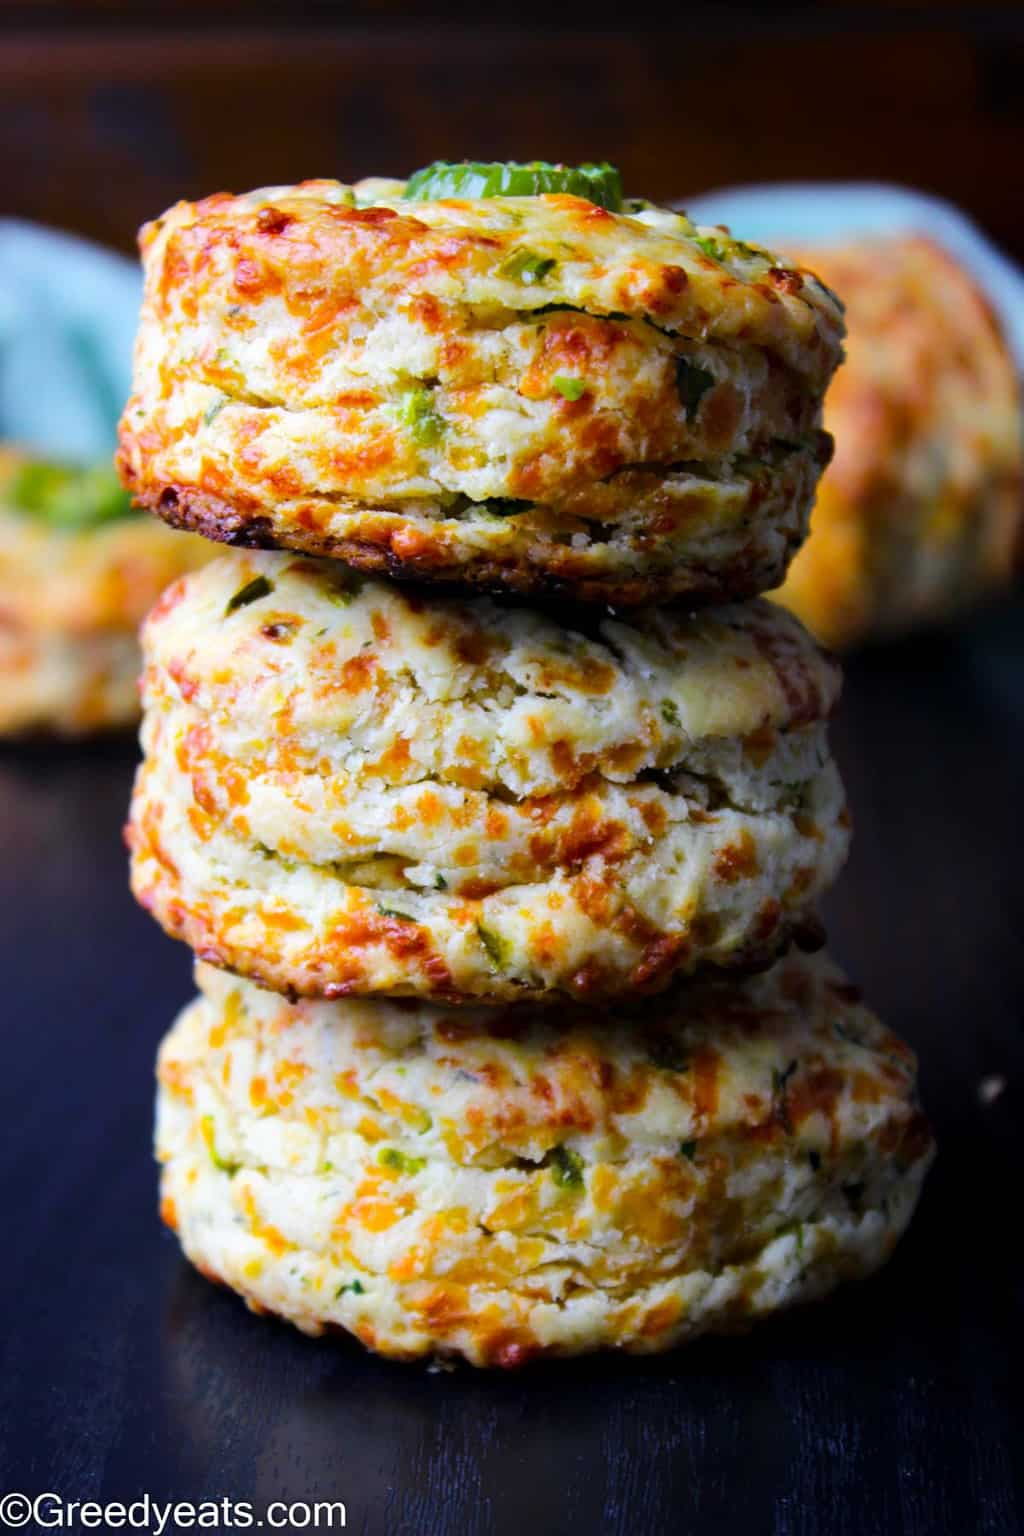 Homemade and easy Jalapeno Biscuits made with cheddar cheese, buttermilk, butter, salt and garlic powder.